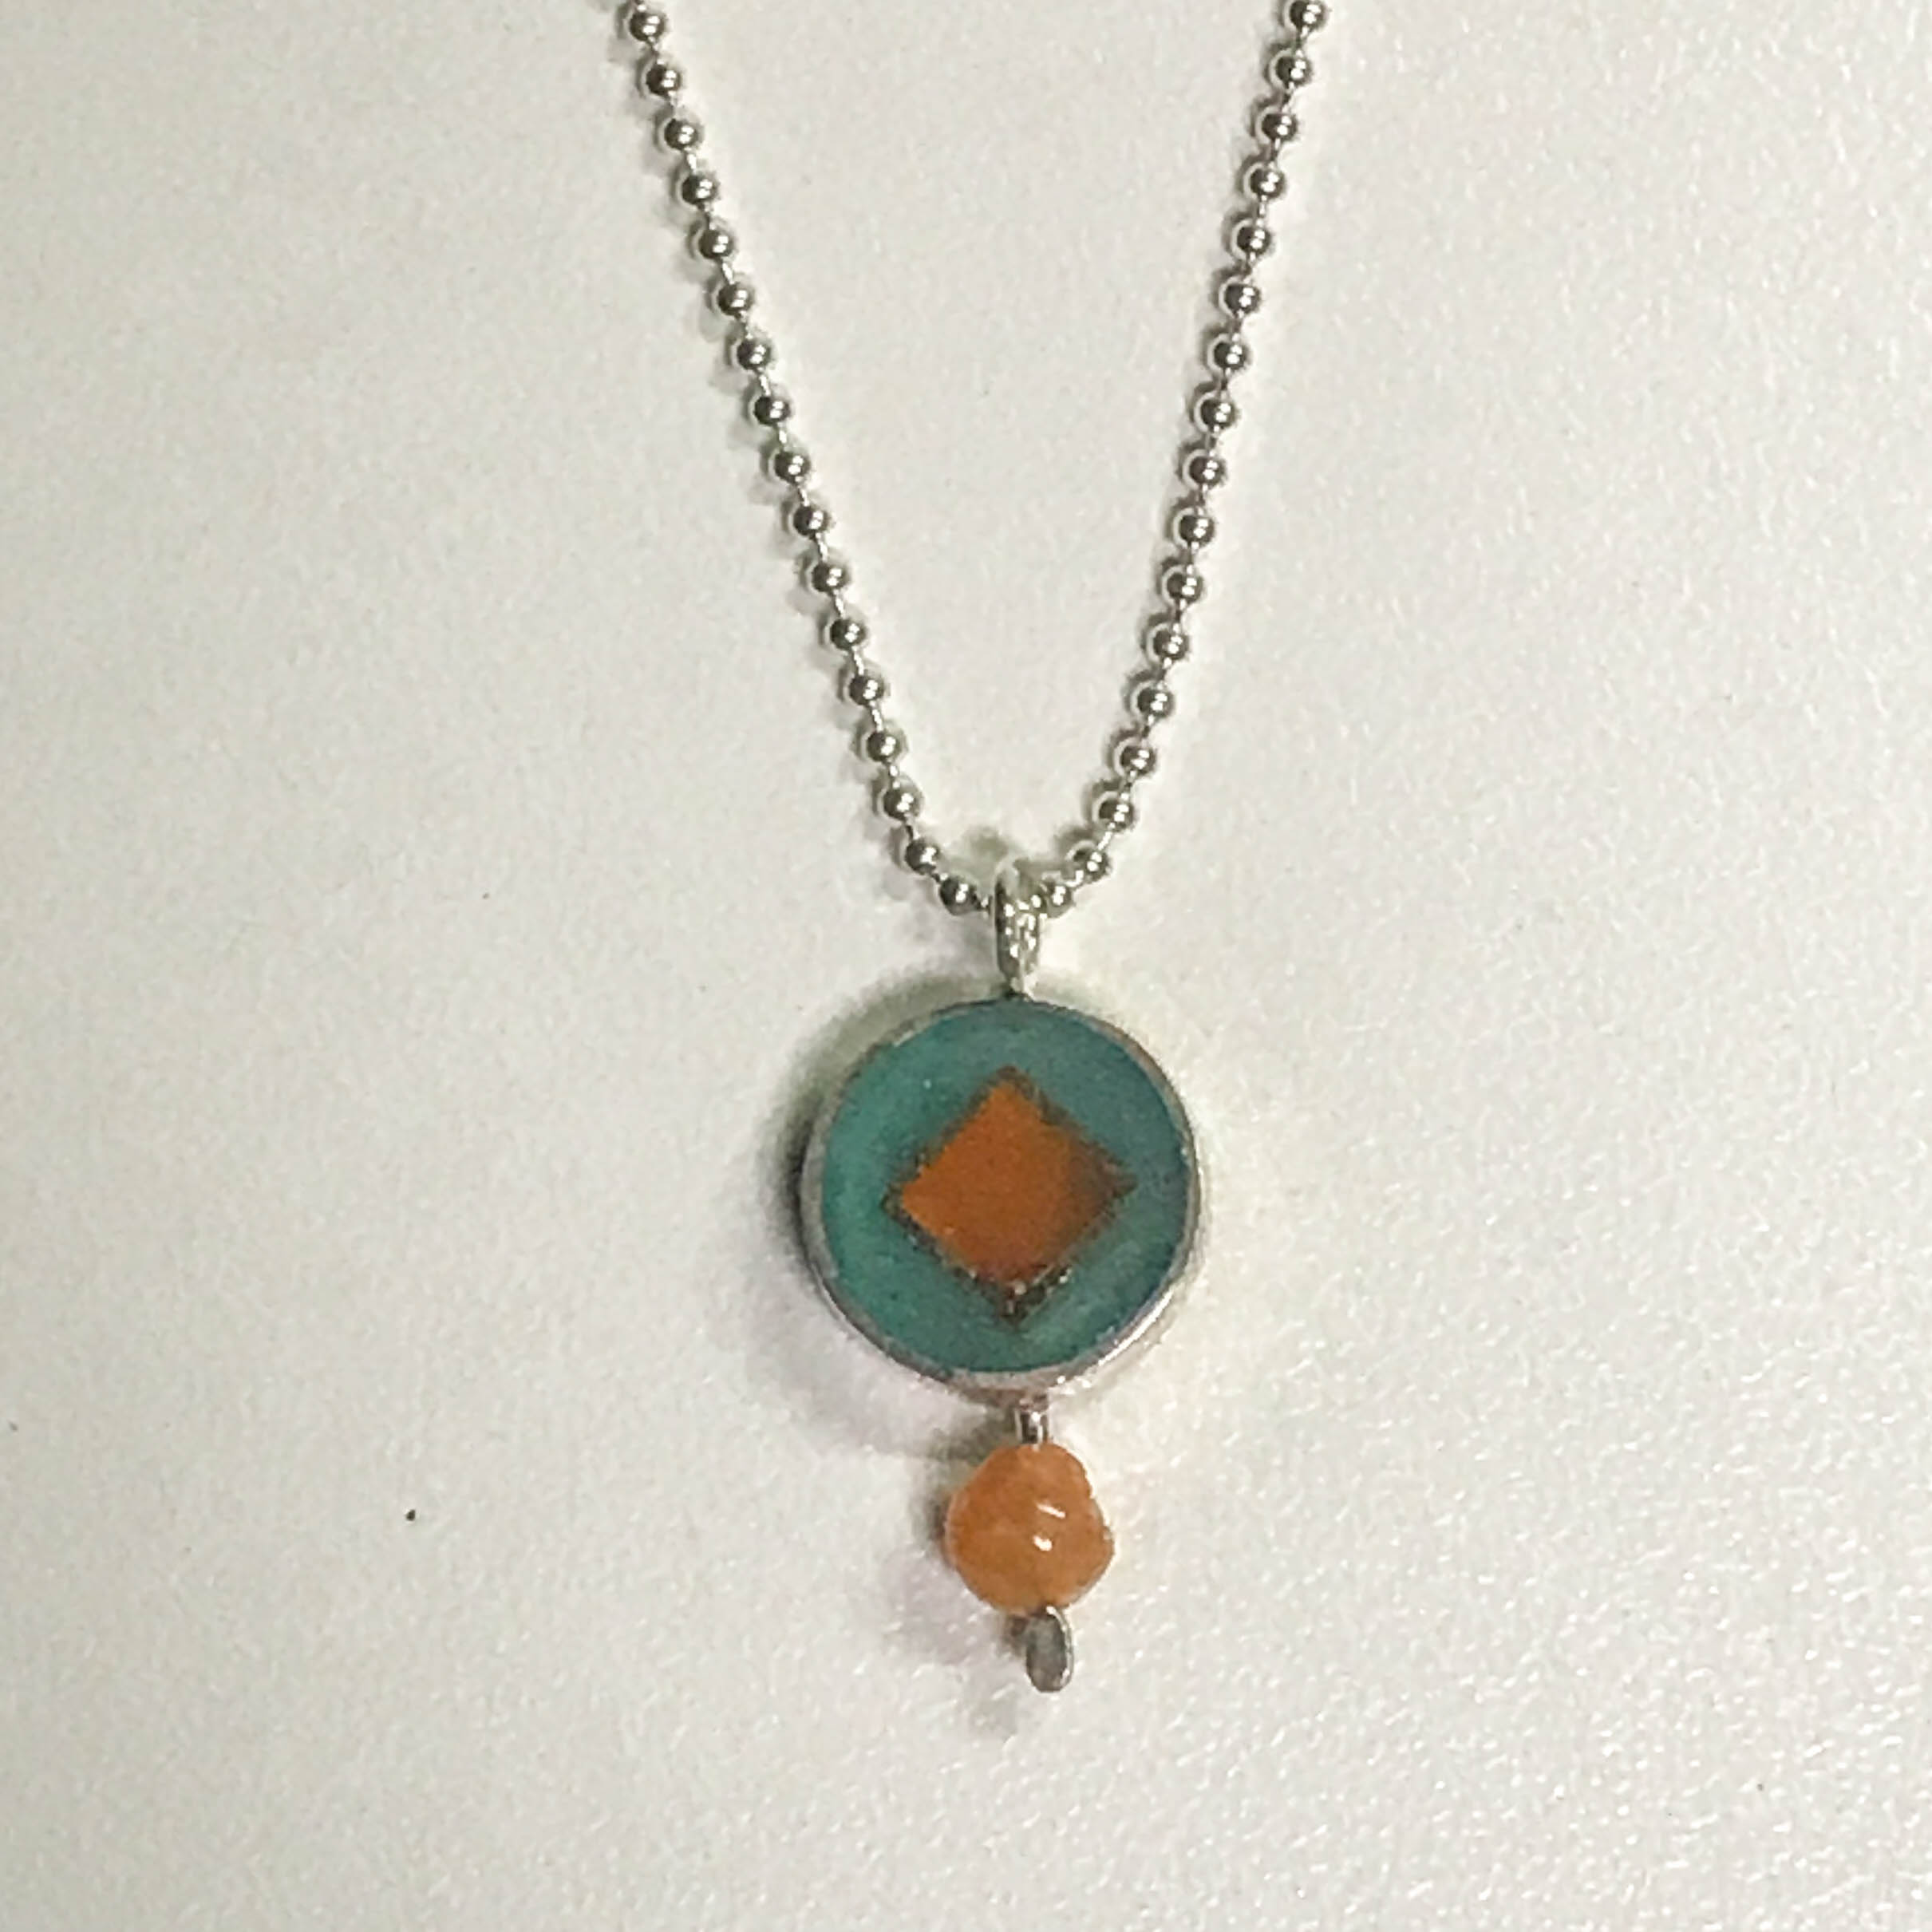 Round pendant drop necklace, sterling silver with resin inlay, orange quartz bead, sterling silver bead chain, $80